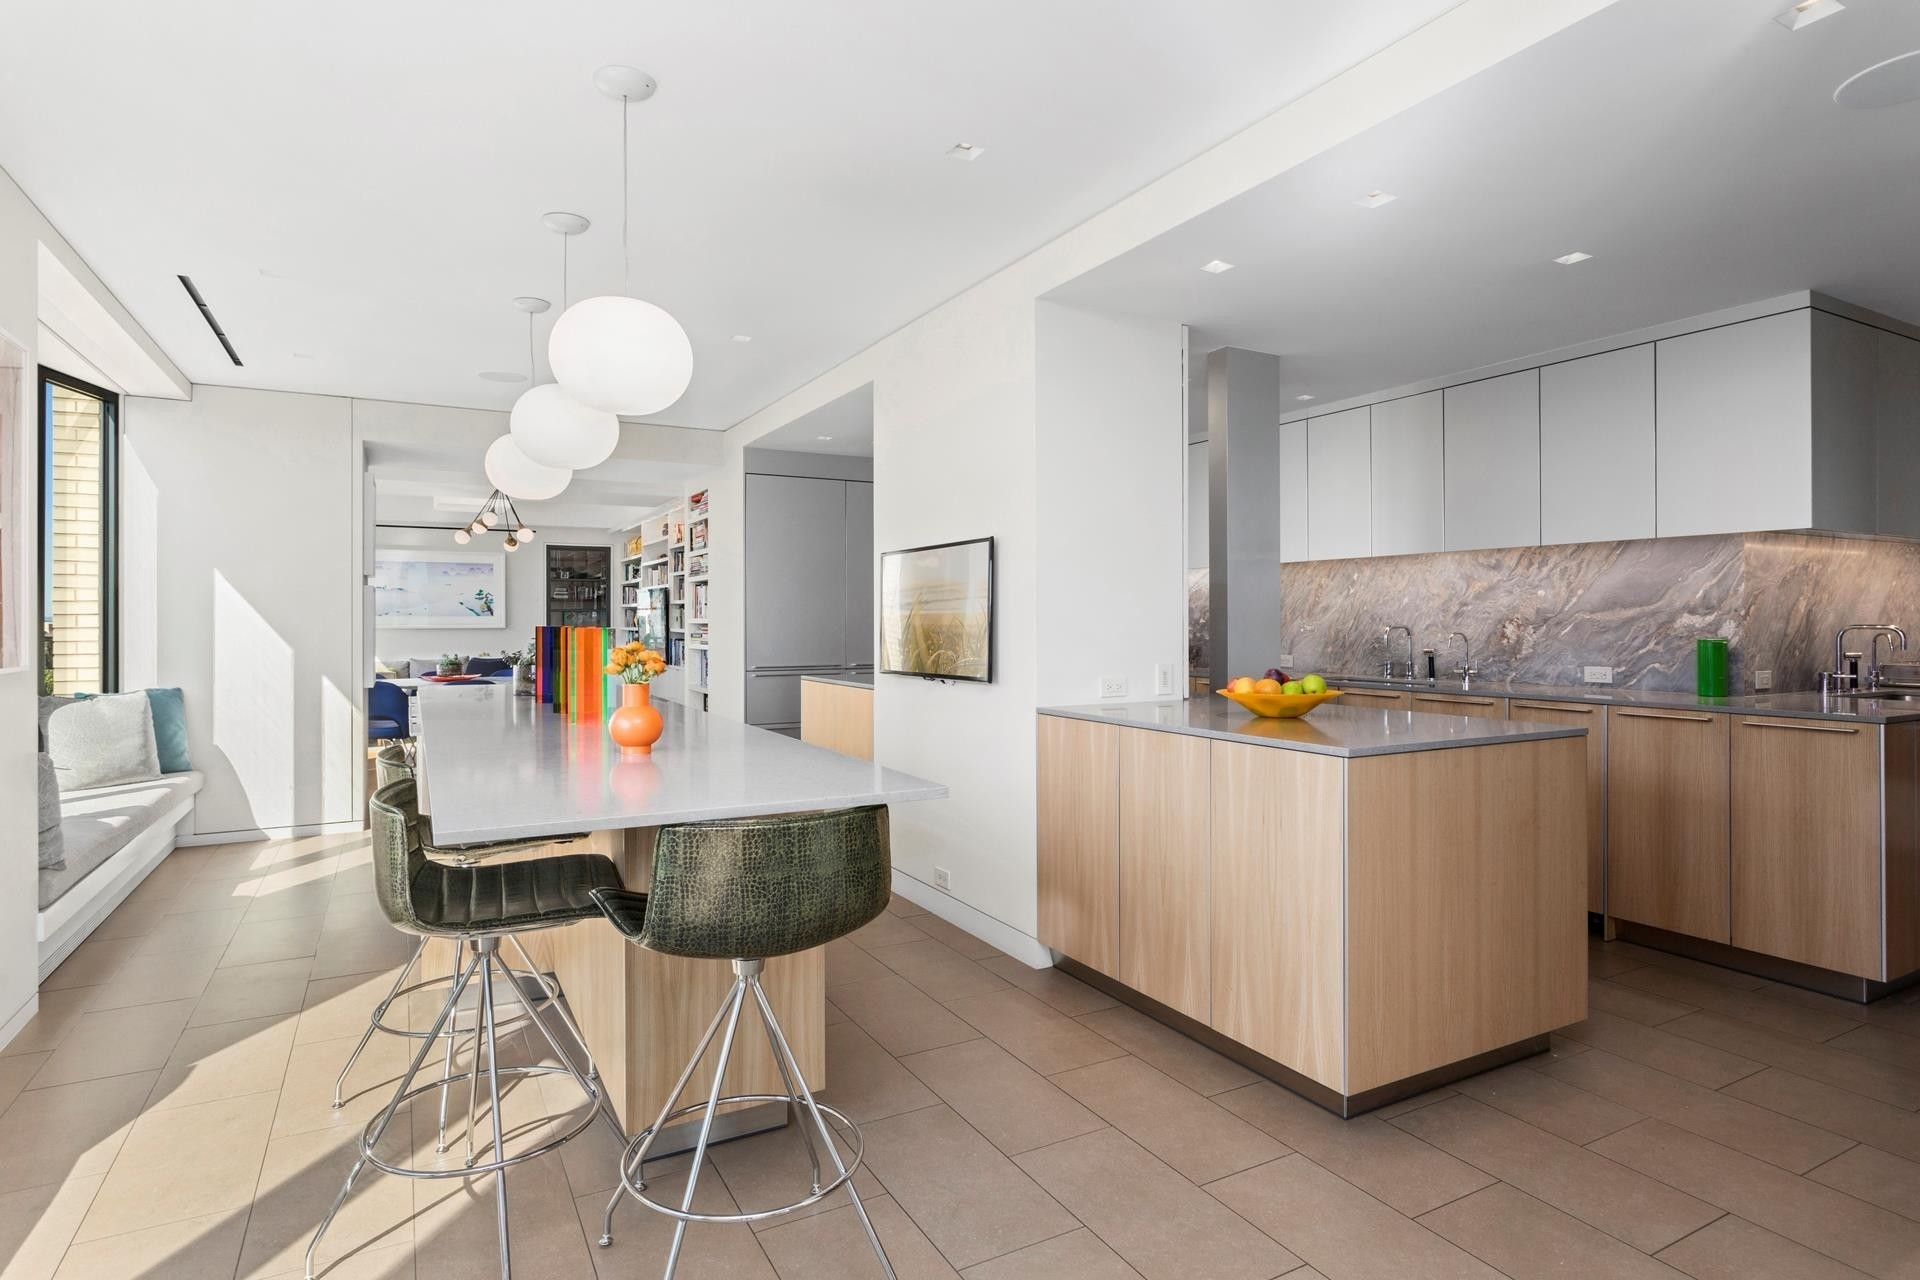 8. Condominiums for Sale at 279 CENTRAL PARK W, PHBA Upper West Side, New York, NY 10024